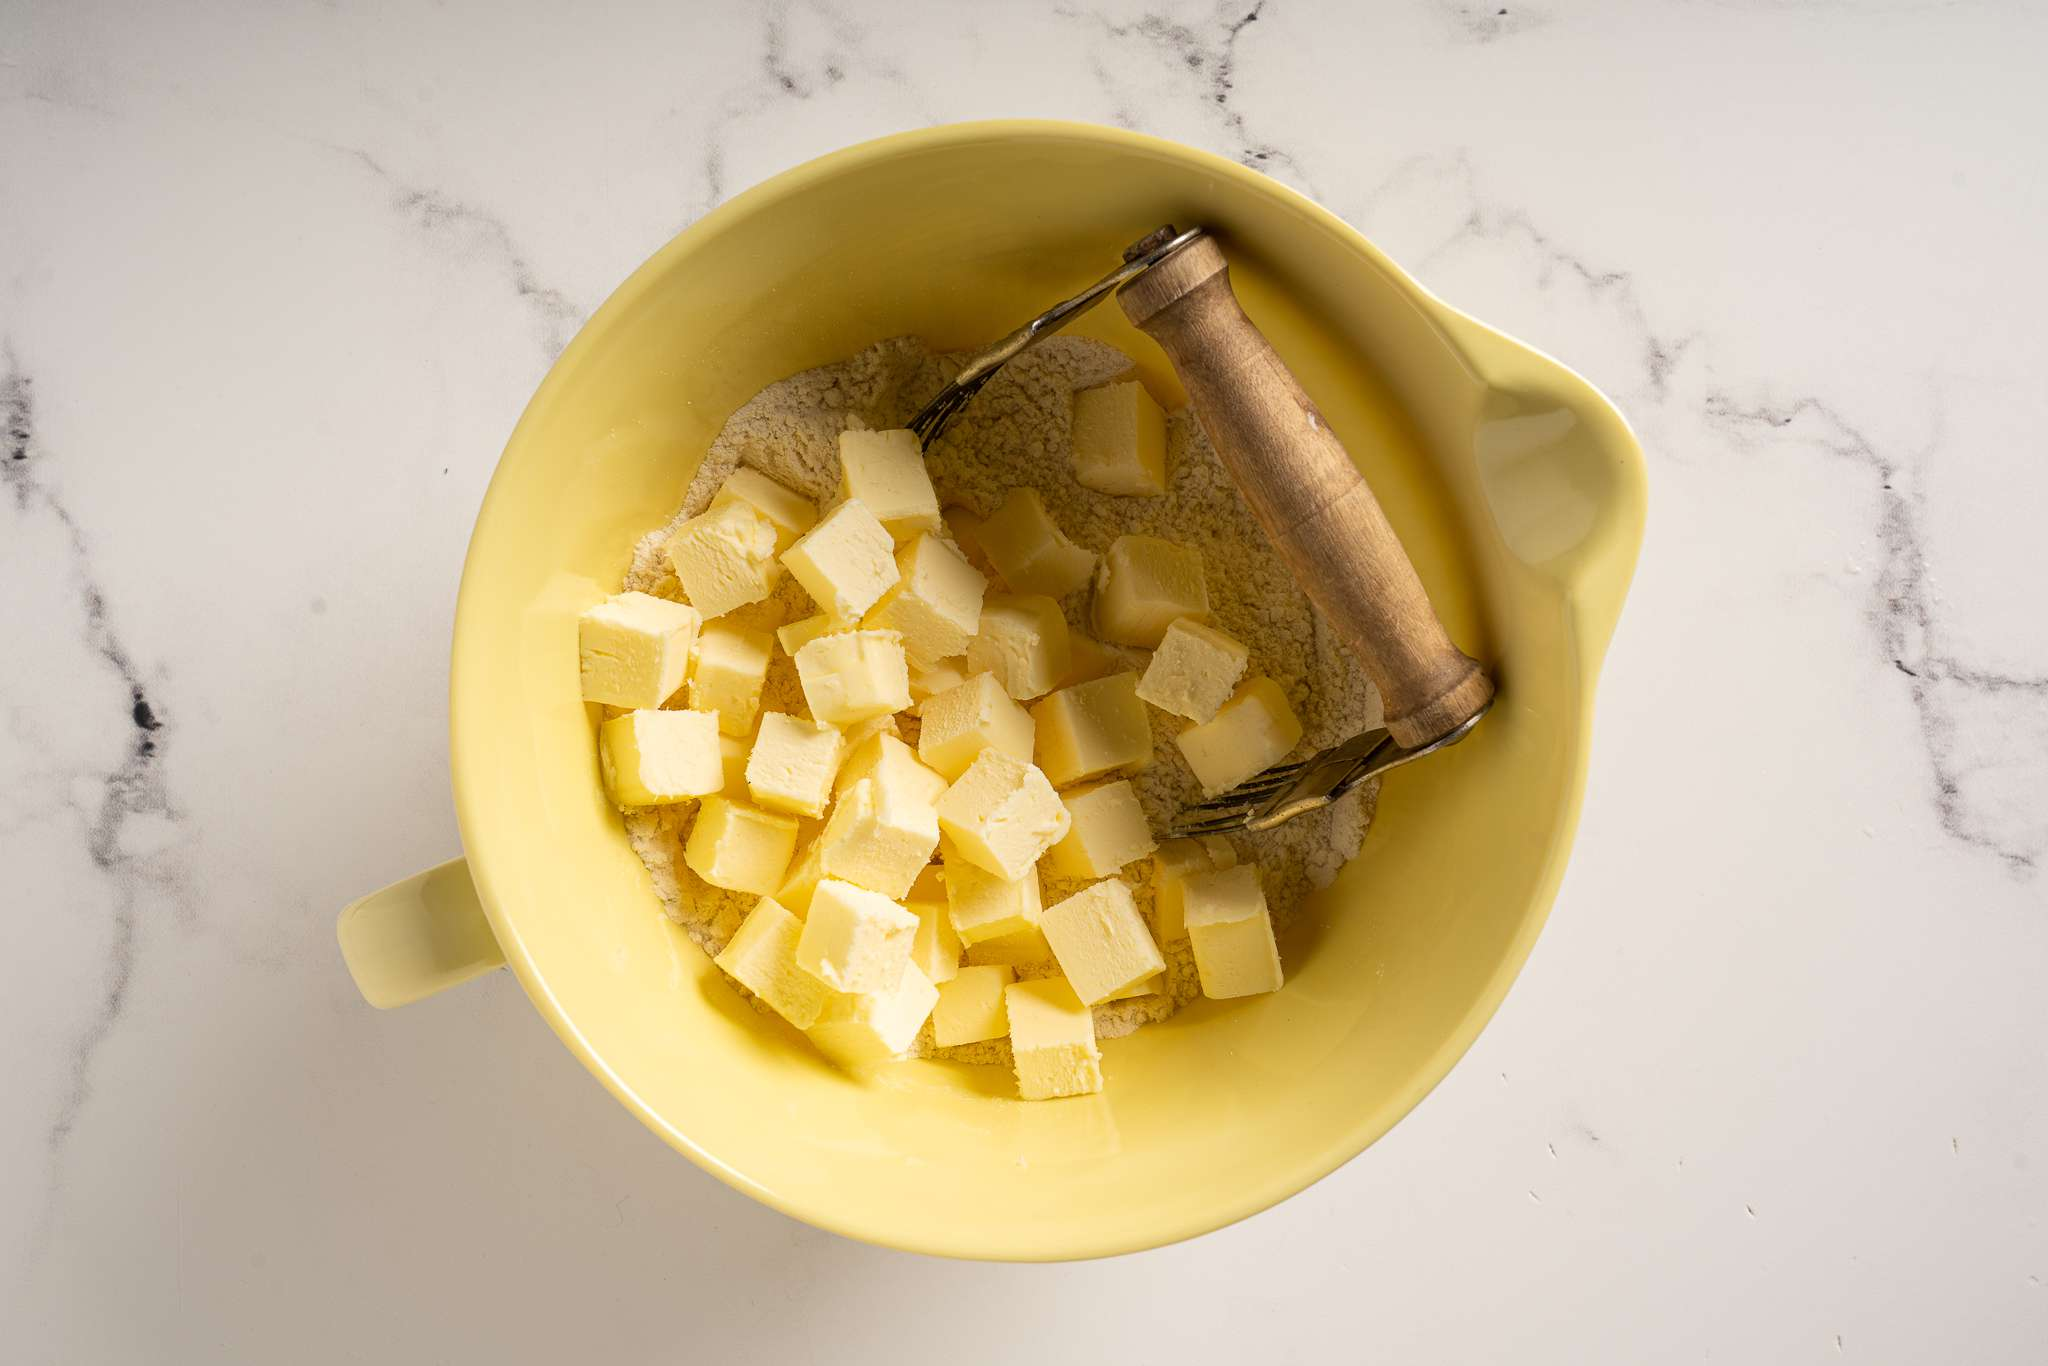 Butter being cut into the dry ingredients in a bowl with a pastry blender